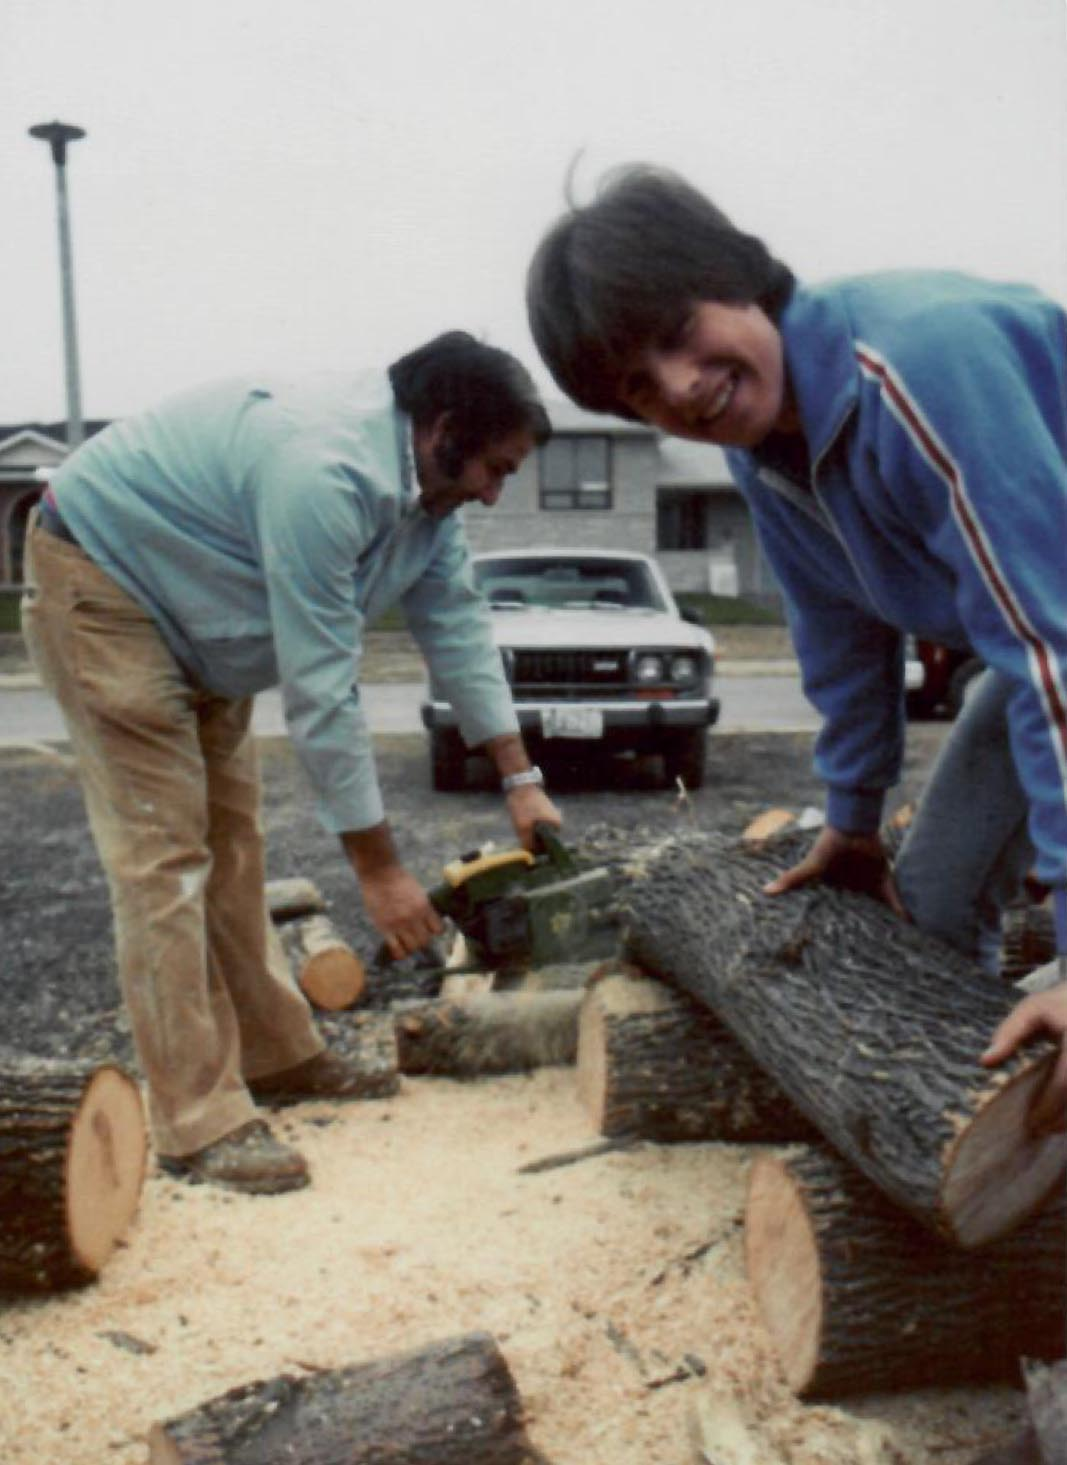 1980s - Gabriele and Domenico cutting firewood on Bridlewood Drive